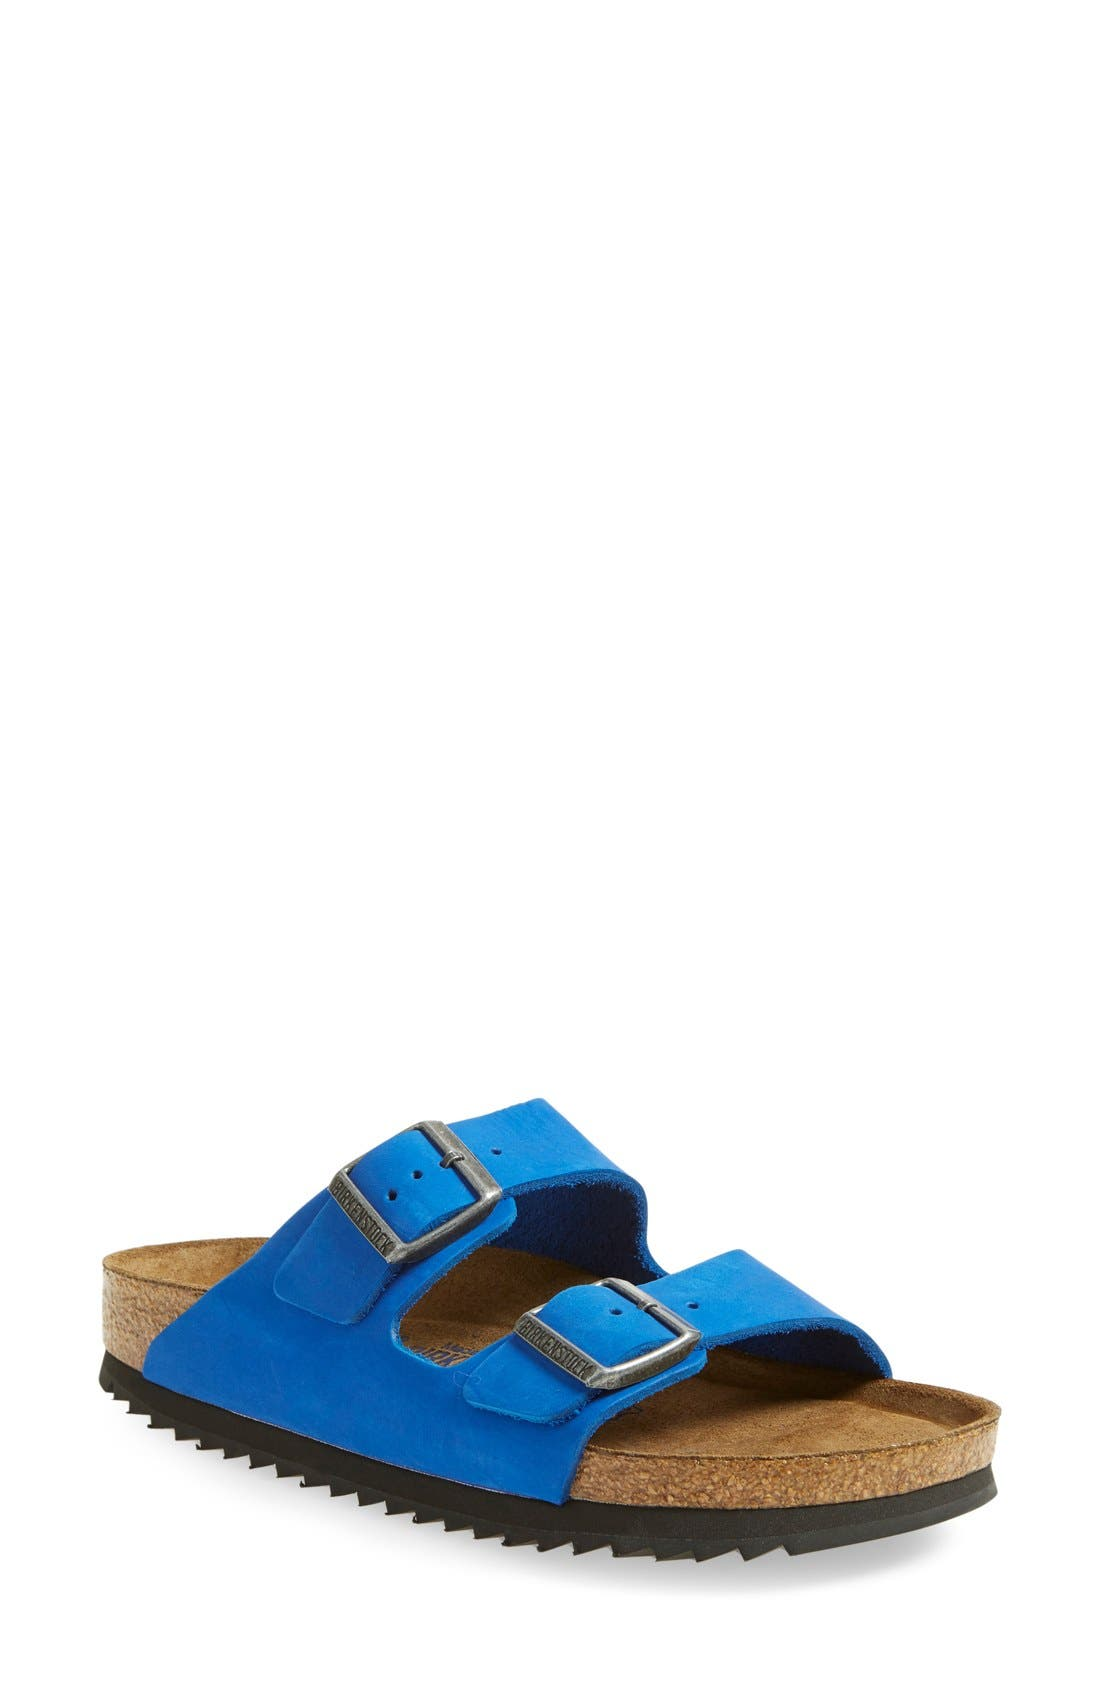 Alternate Image 1 Selected - Birkenstock 'Arizona' Sandal (Women)